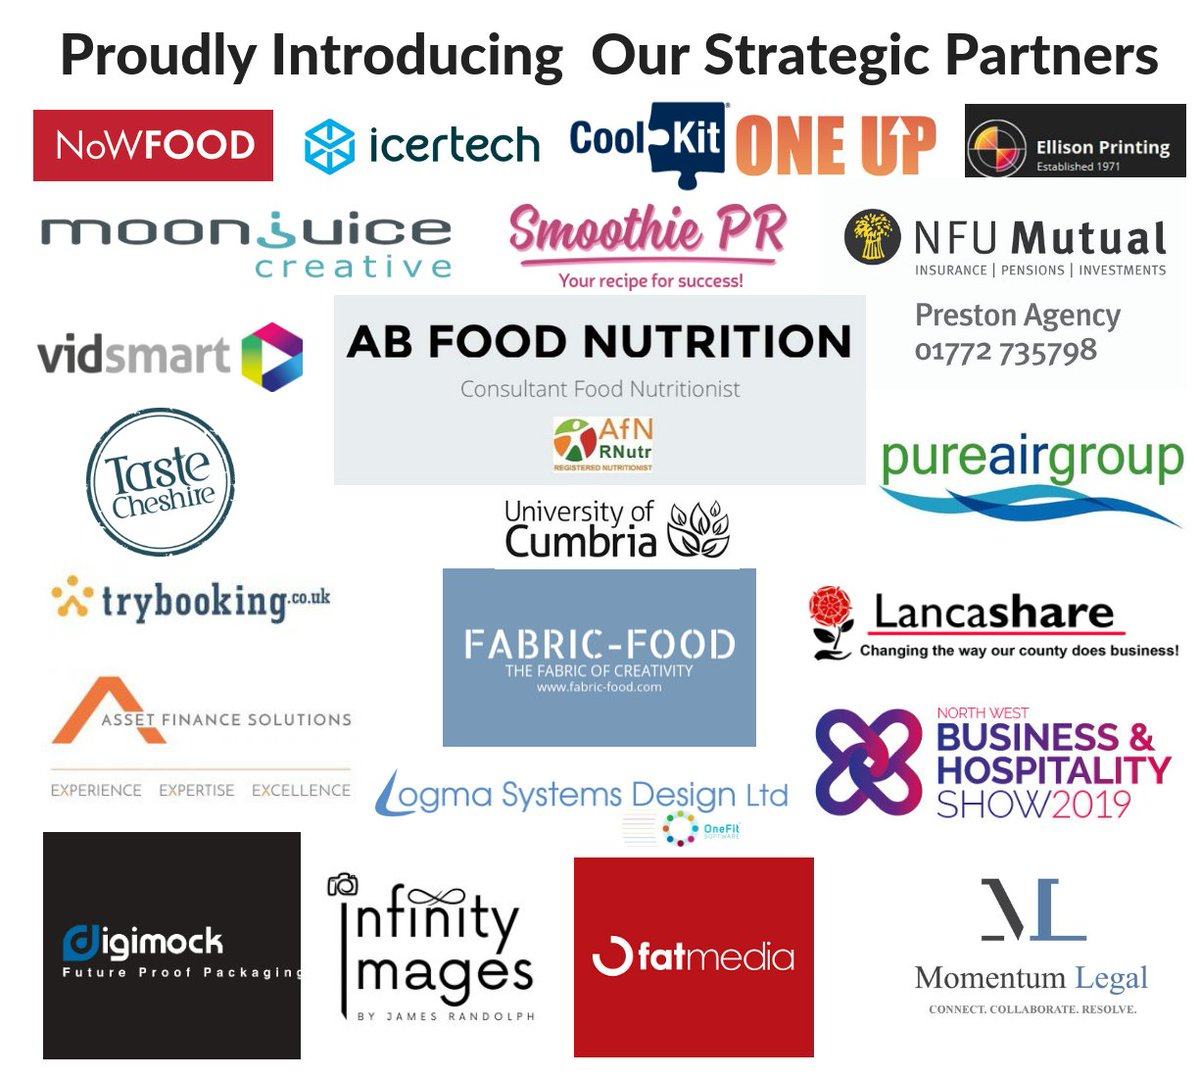 Meet our 23 latest Strategic Partners - a #collaboration of companies we feel can help your business #grow from strength to strength #fdmb #Lancashire #Manchester #Merseyside #Cumbria #Cheshire #northwales #foodanddrink #supplychain #strength